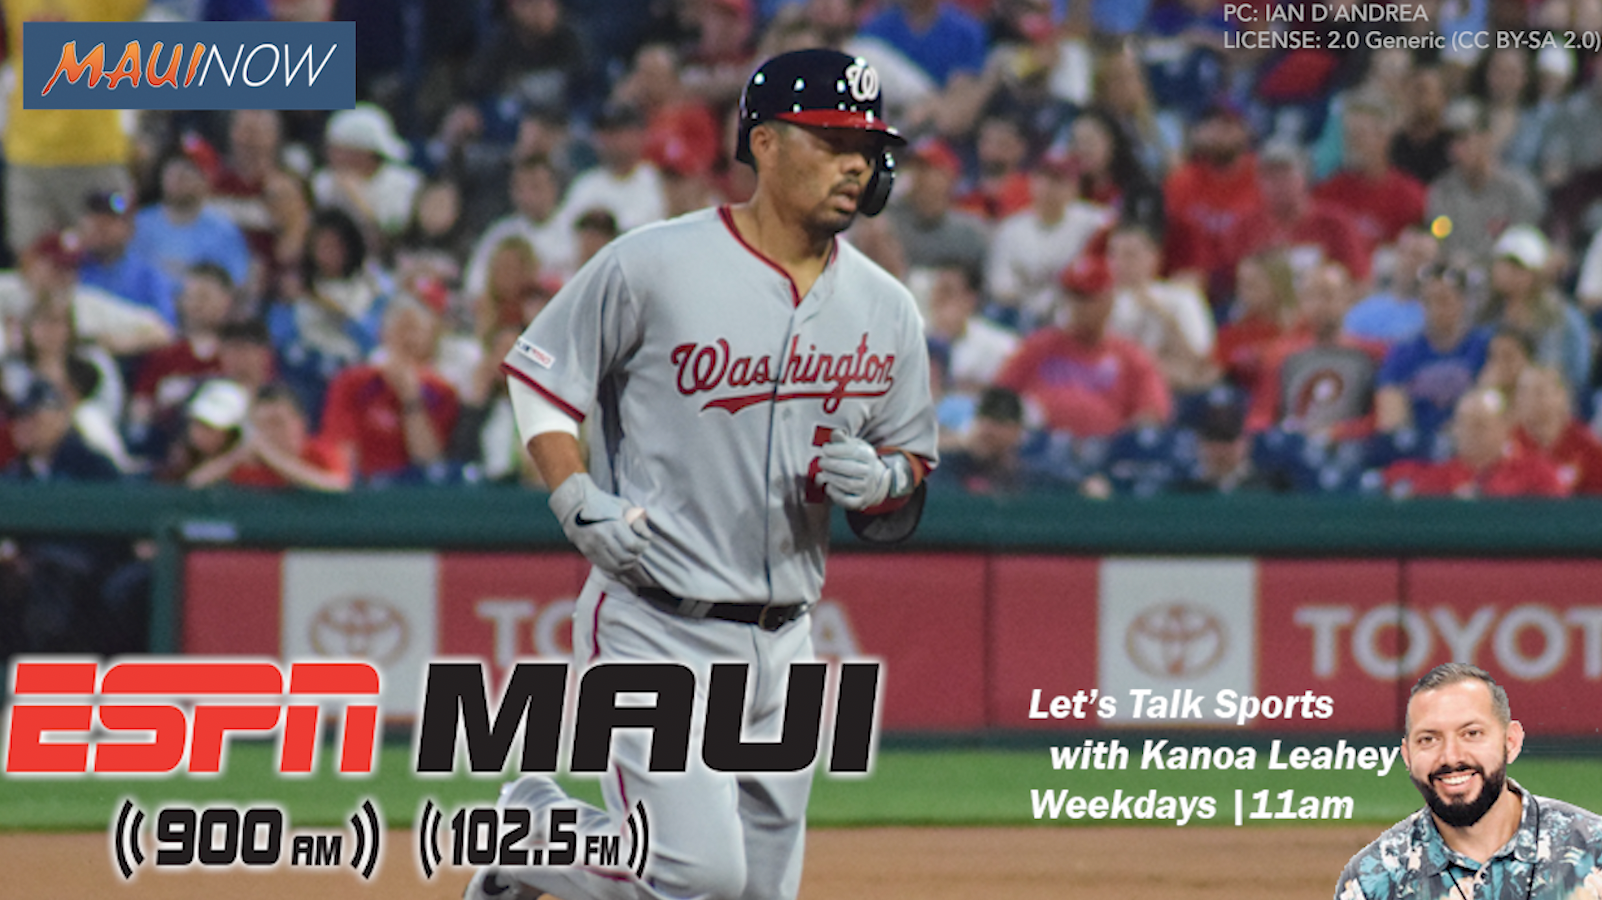 Maui's Kurt Suzuki Talks Sports with Kanoa Leahey on Heels of World Series Win